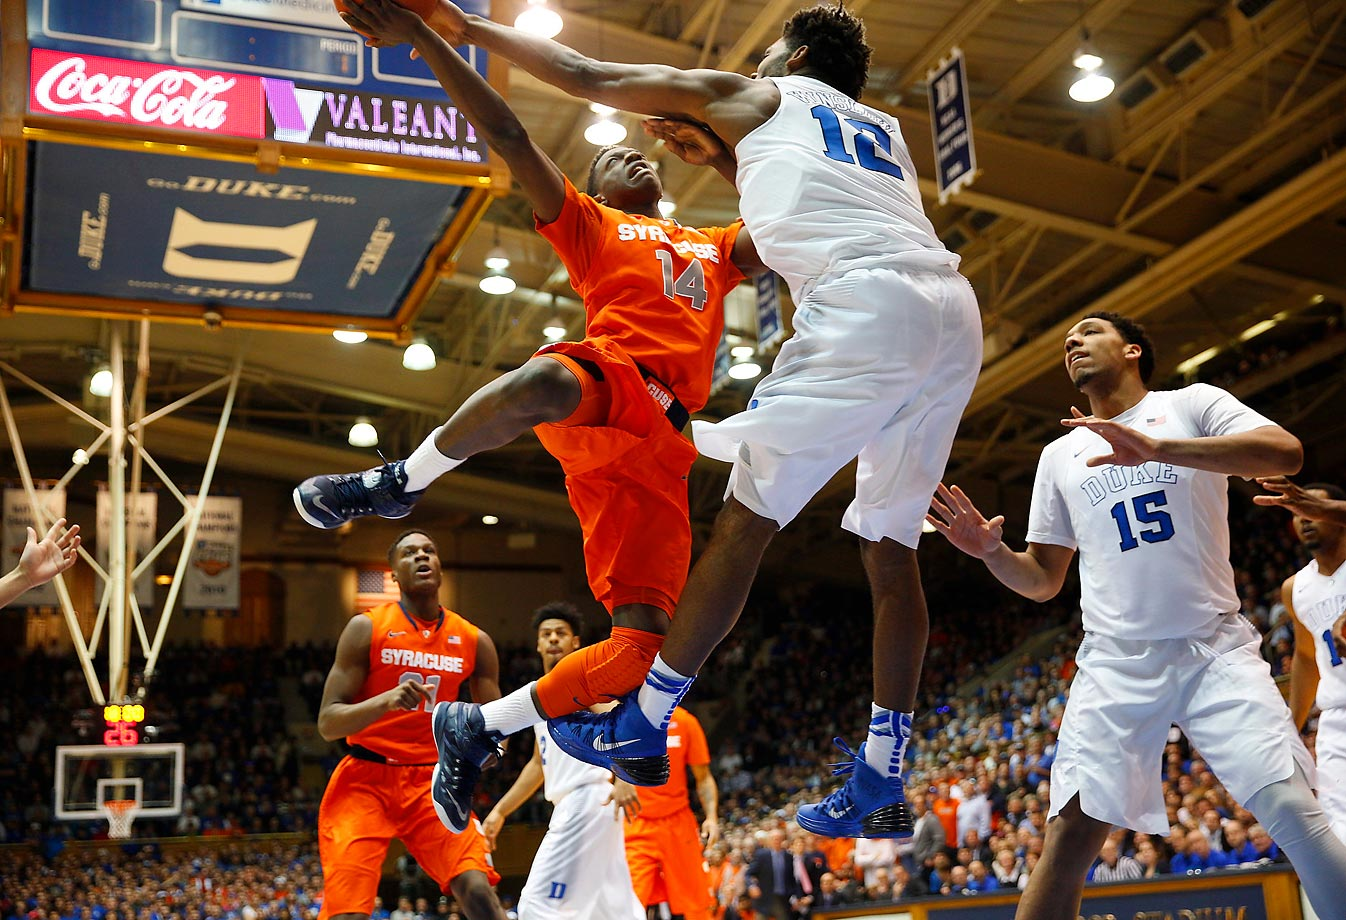 Kaleb Joseph (14) works to shoot against forward Justise Winslow (12) during a game between the Syracuse Orange and Duke Blue Devils.